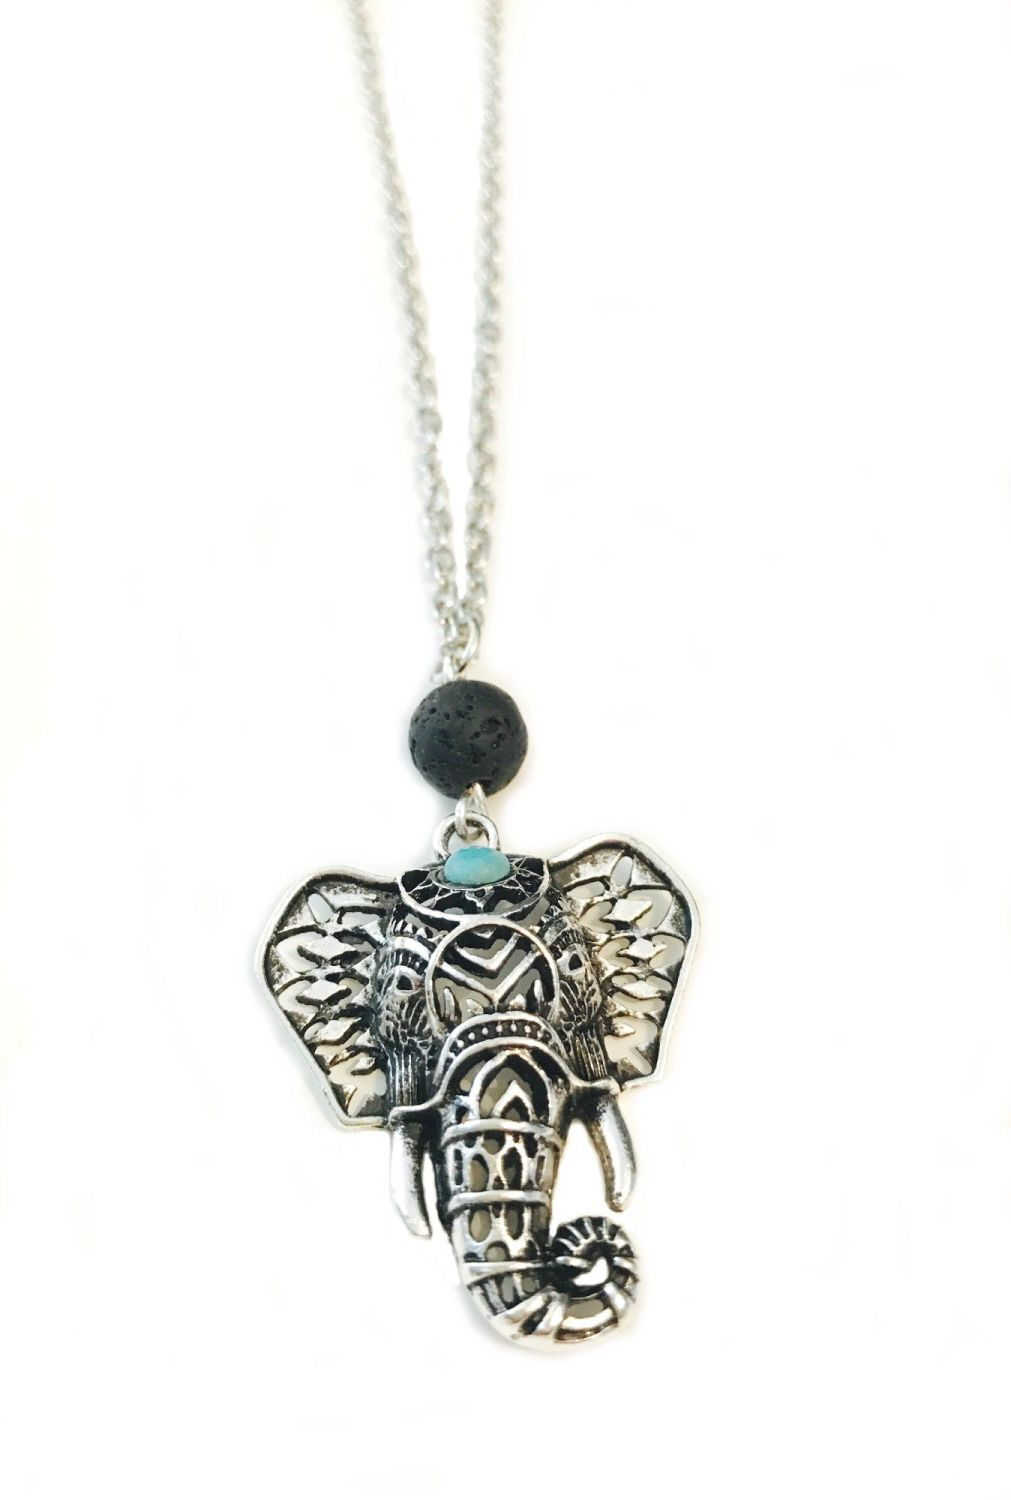 The Elephant Diffuser Pendant